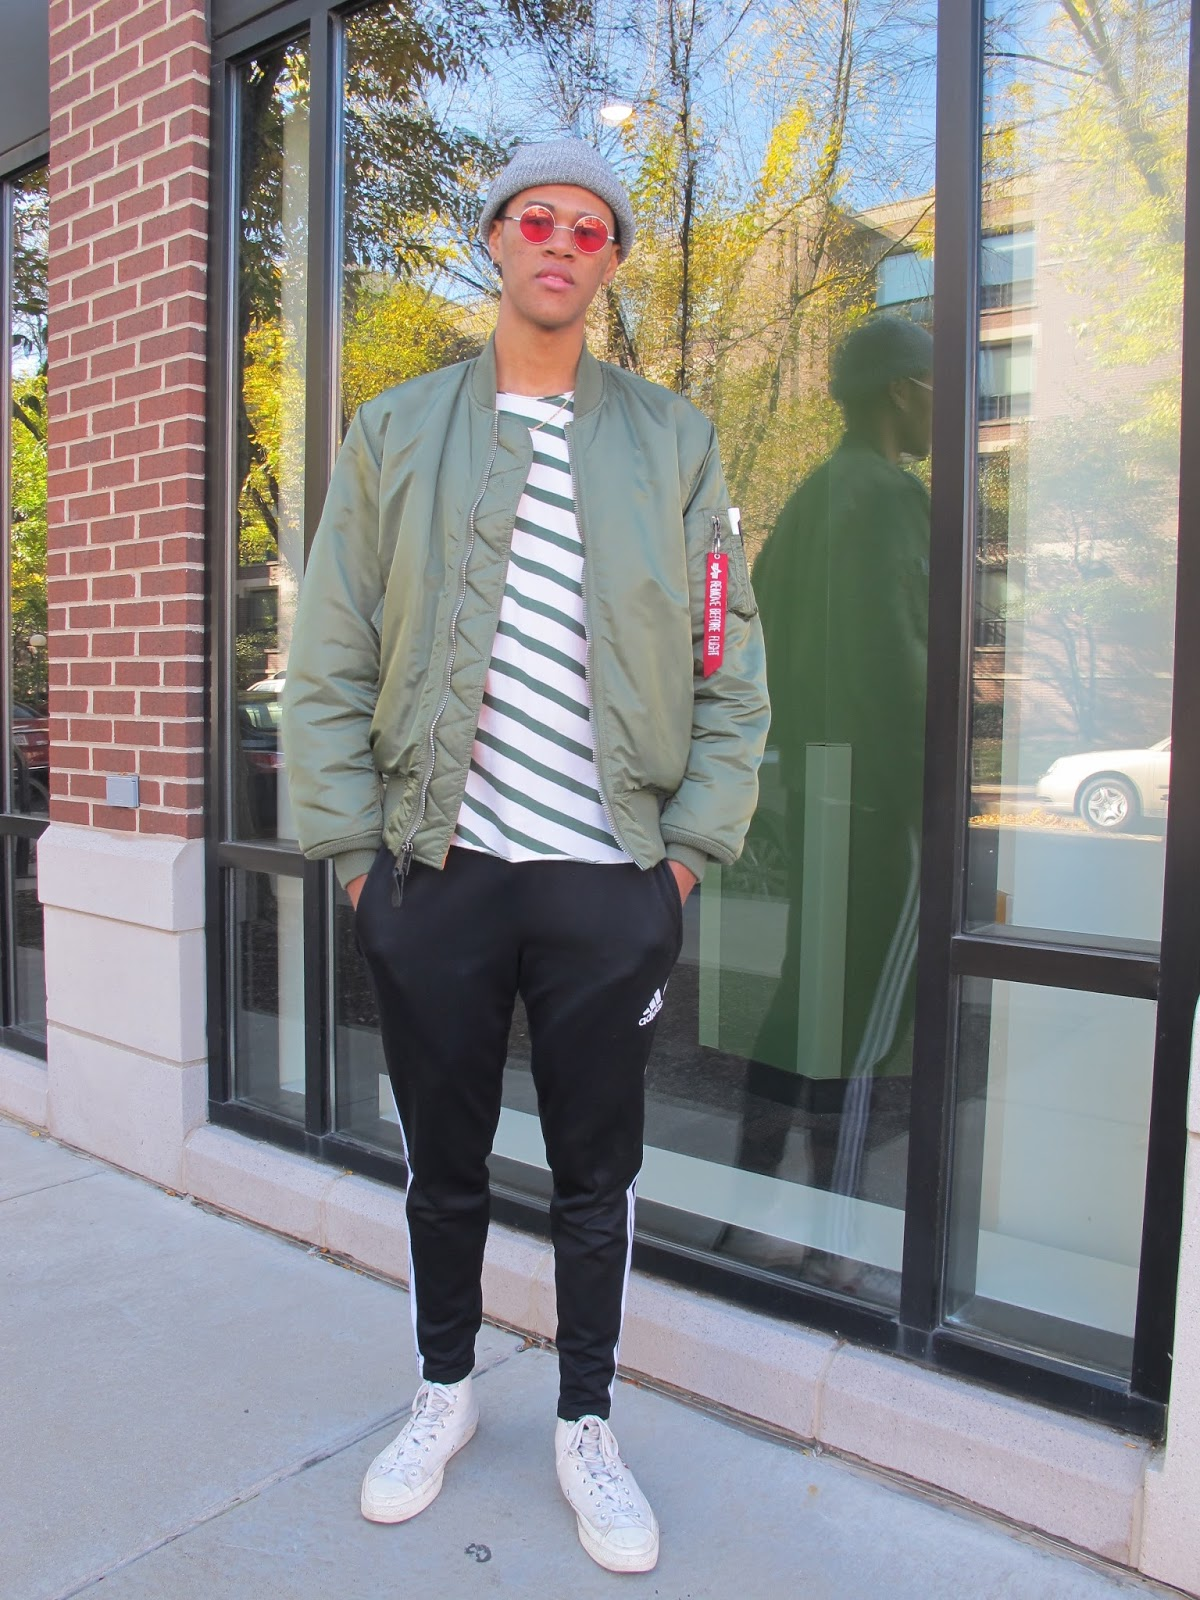 Greg chicago looks a chicago street style fashion blog Grace fashion style chicago